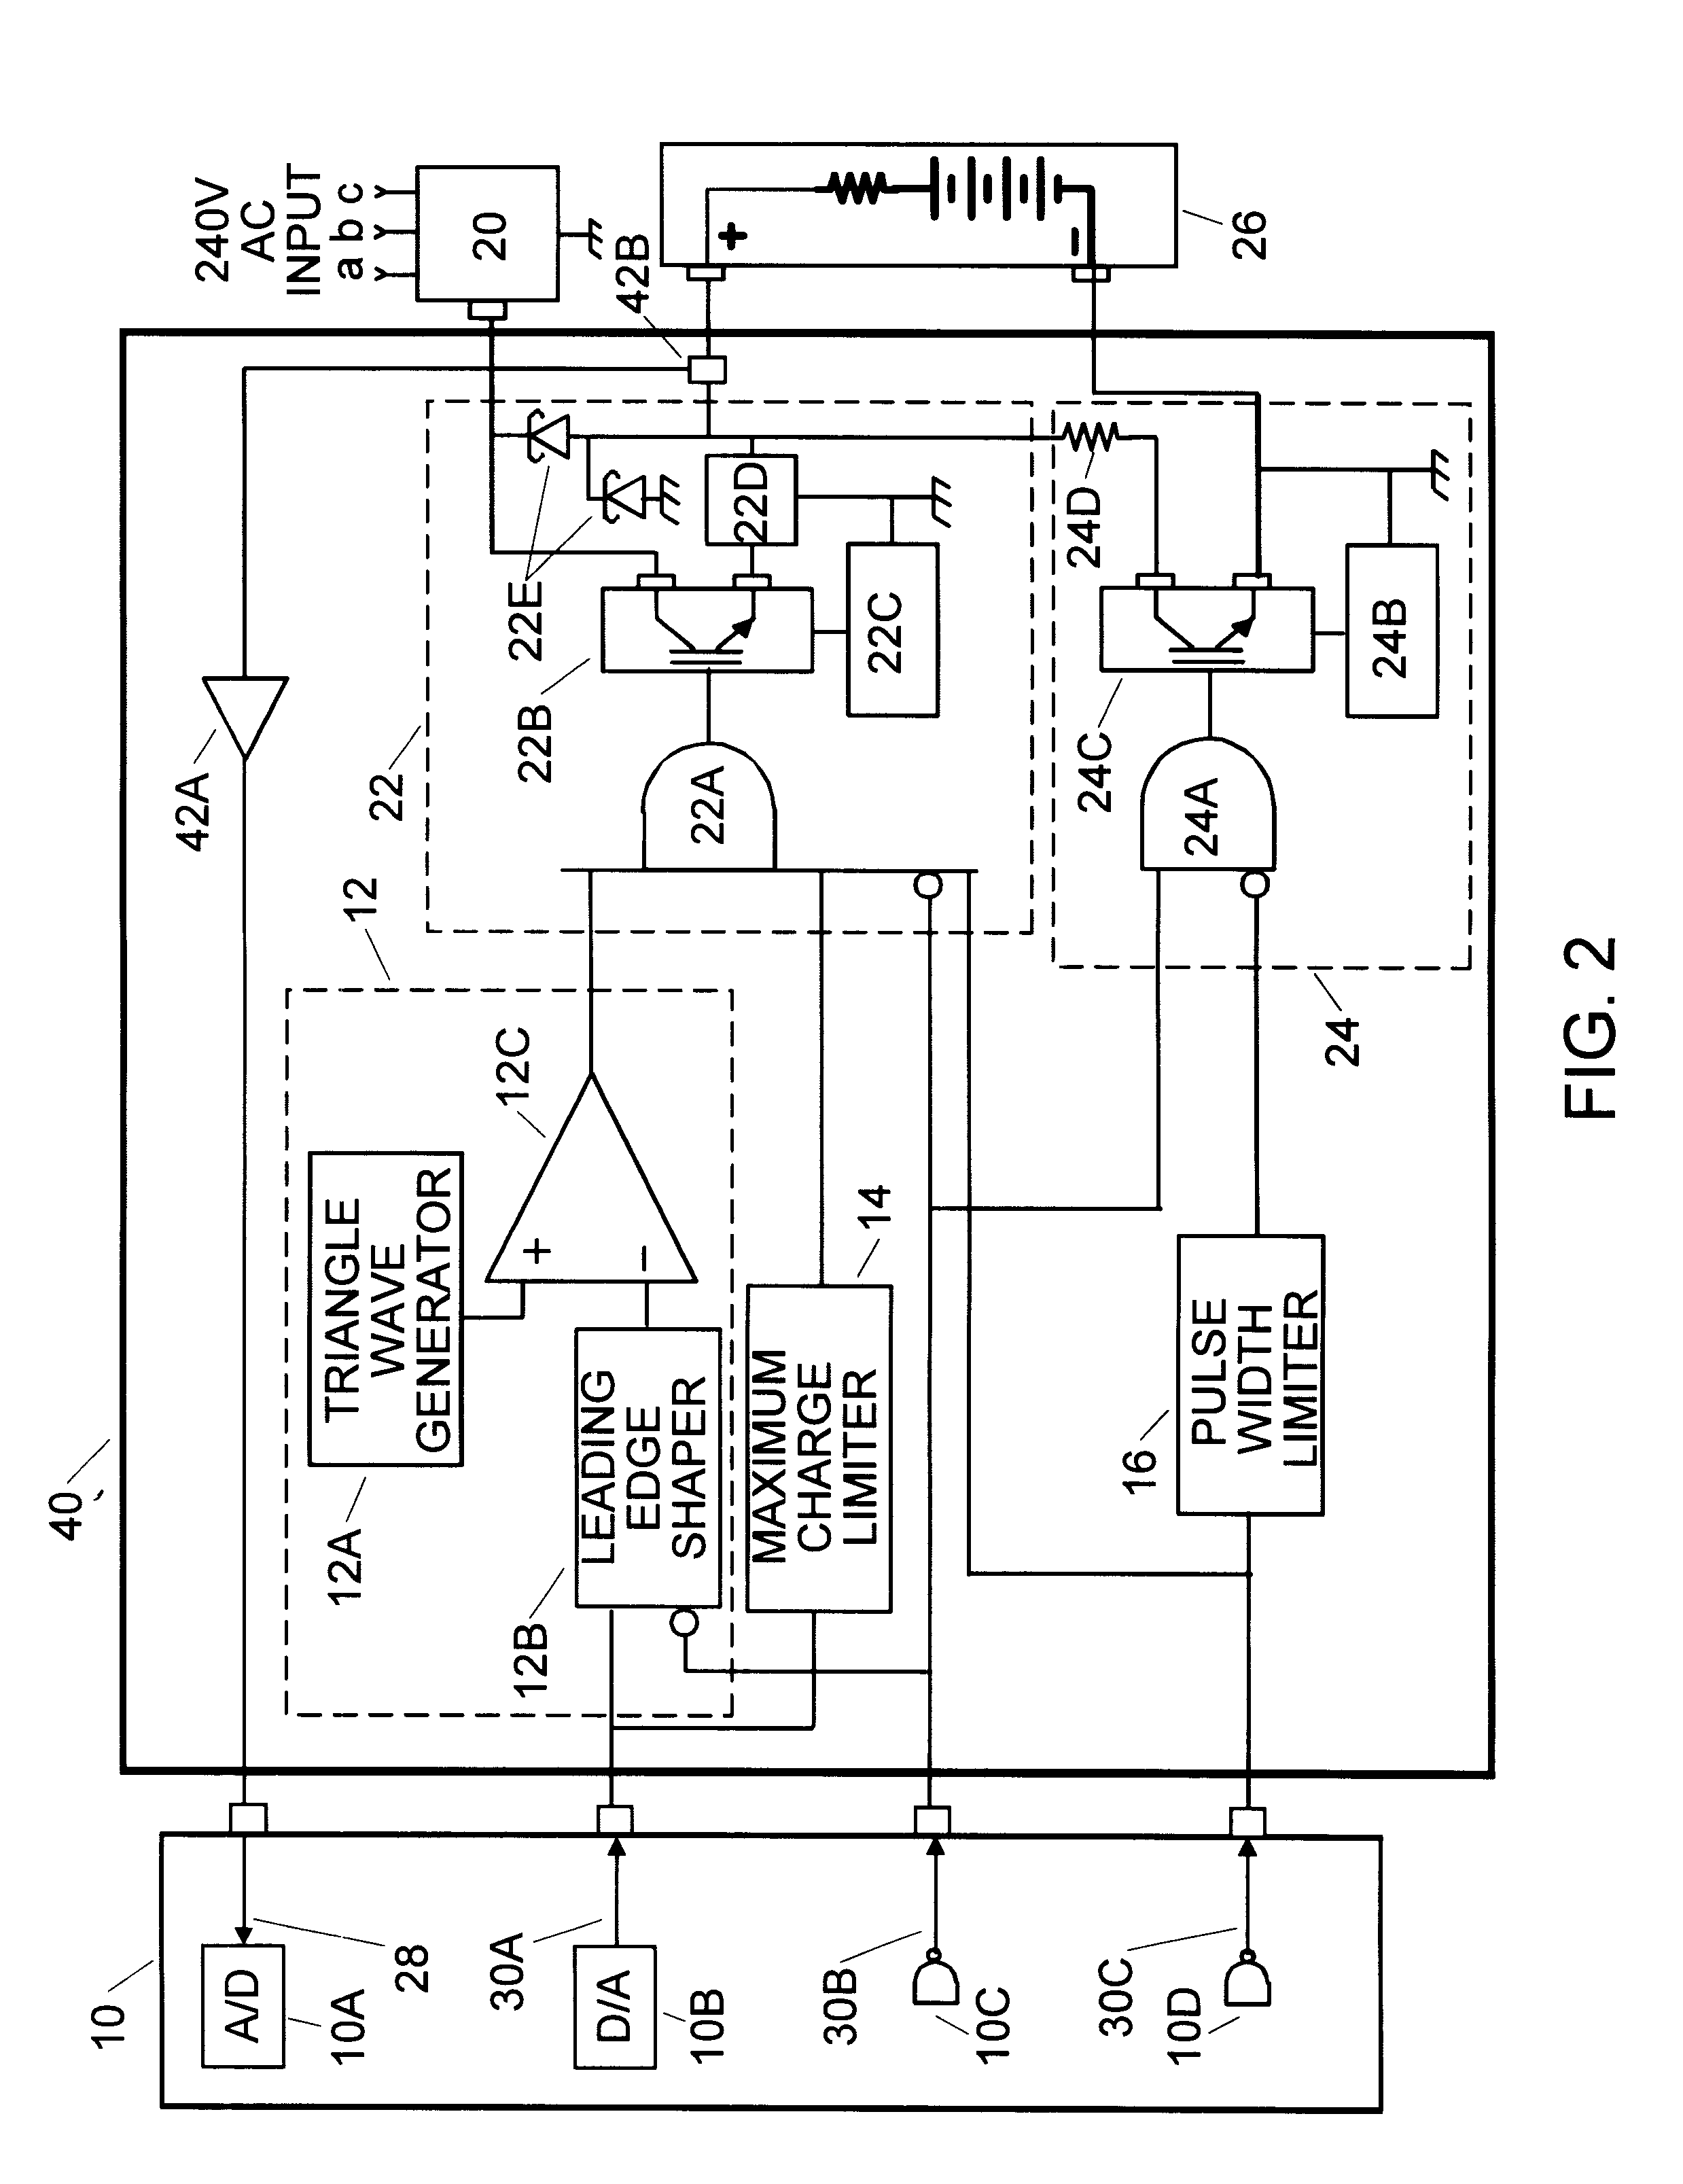 Patent Us6307352 High Energy Charge And Depolarization Pulse Triangular Wave Signal Generator Circuit Drawing